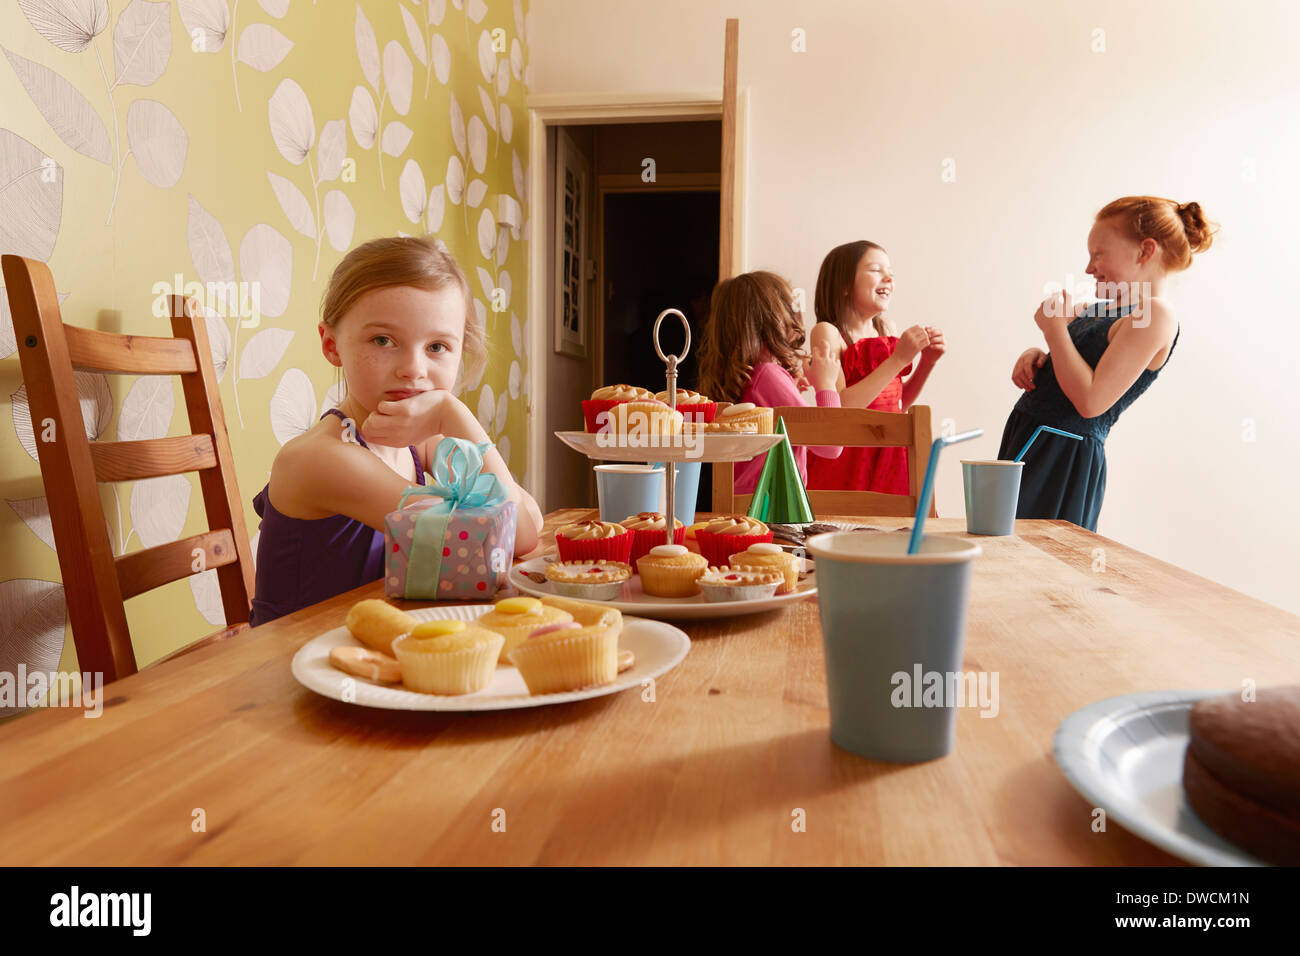 Girl at table with party food, friends in background - Stock Image